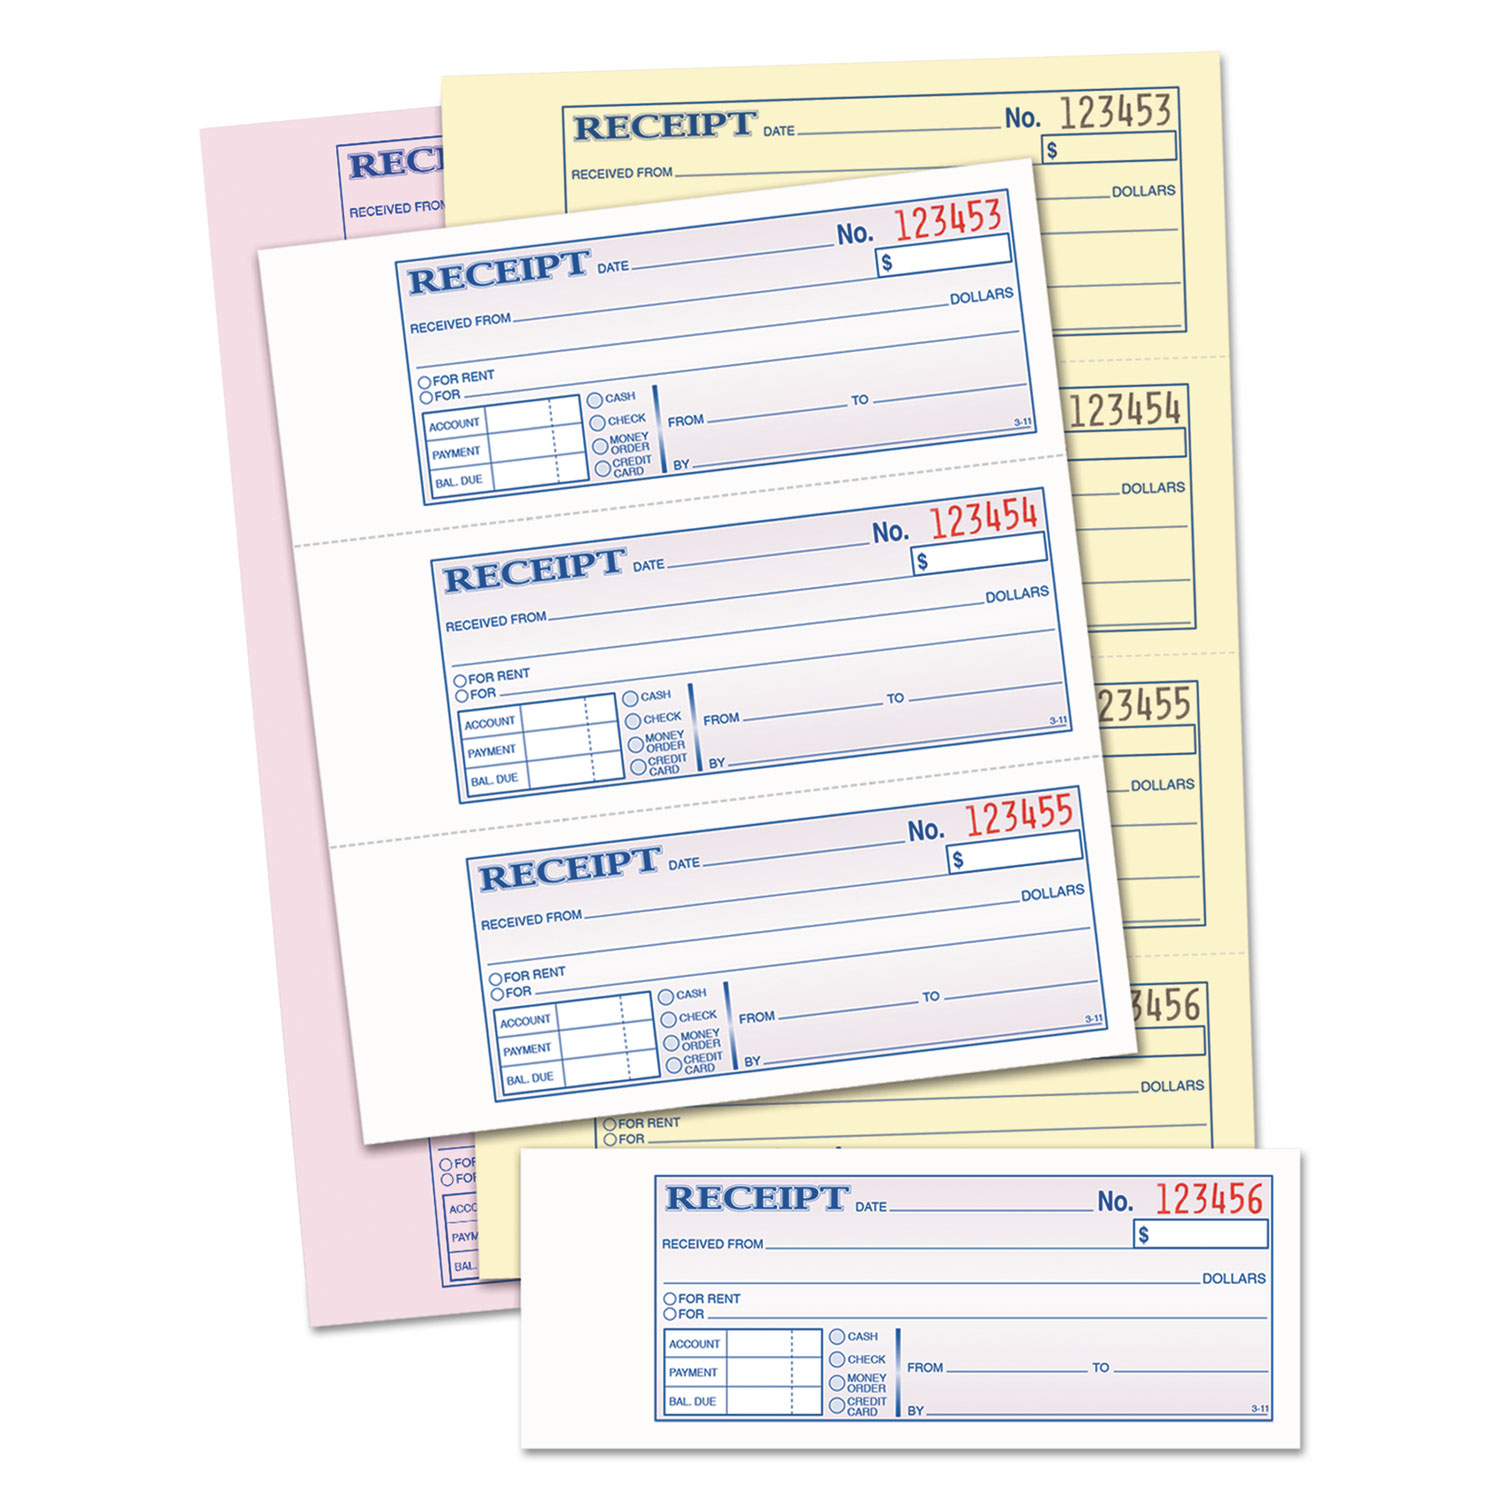 rent receipt copy bank loan proposal sample wanted signs template abftc1182 money rent receipt forms by adams business forms 251969 abftc1182 receipt book 7 5